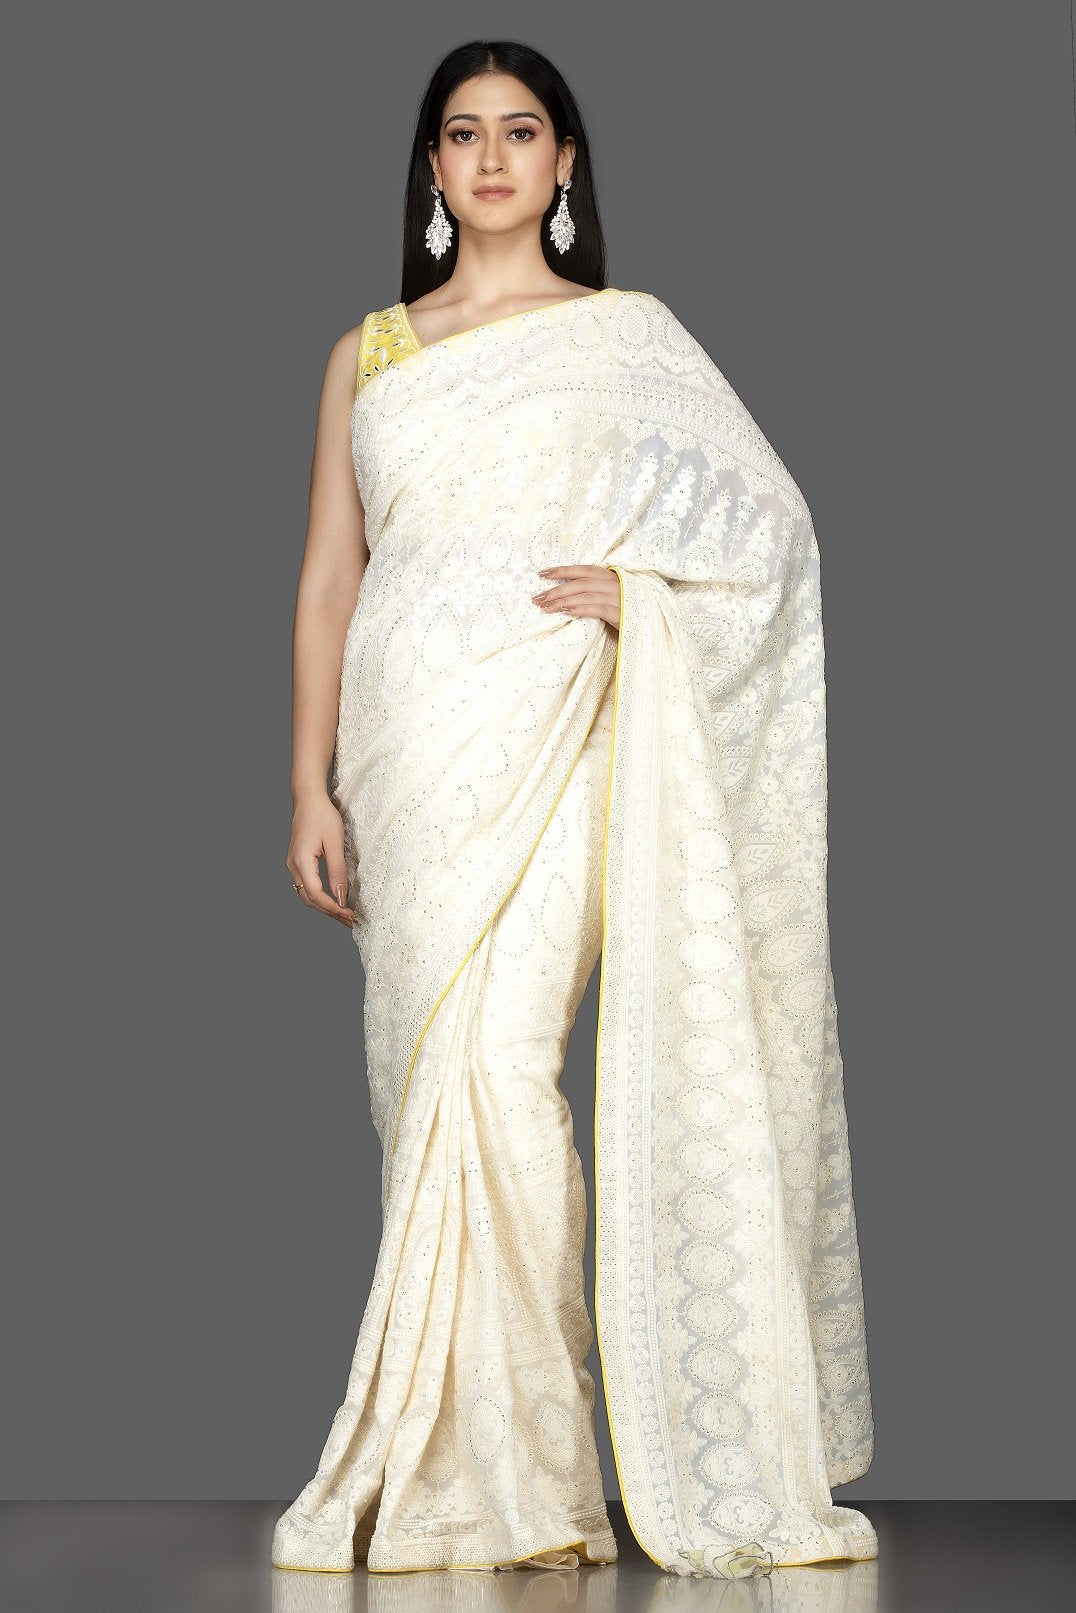 Shop beautiful off-white Lucknowi georgette saree online in USA with yellow embroidered saree blouse. Spread ethnic elegance on weddings and special occasions in splendid designer sarees with blouses, embroidered saris crafted with exquisite Indian craftsmanship from Pure Elegance Indian fashion store in USA.-full view